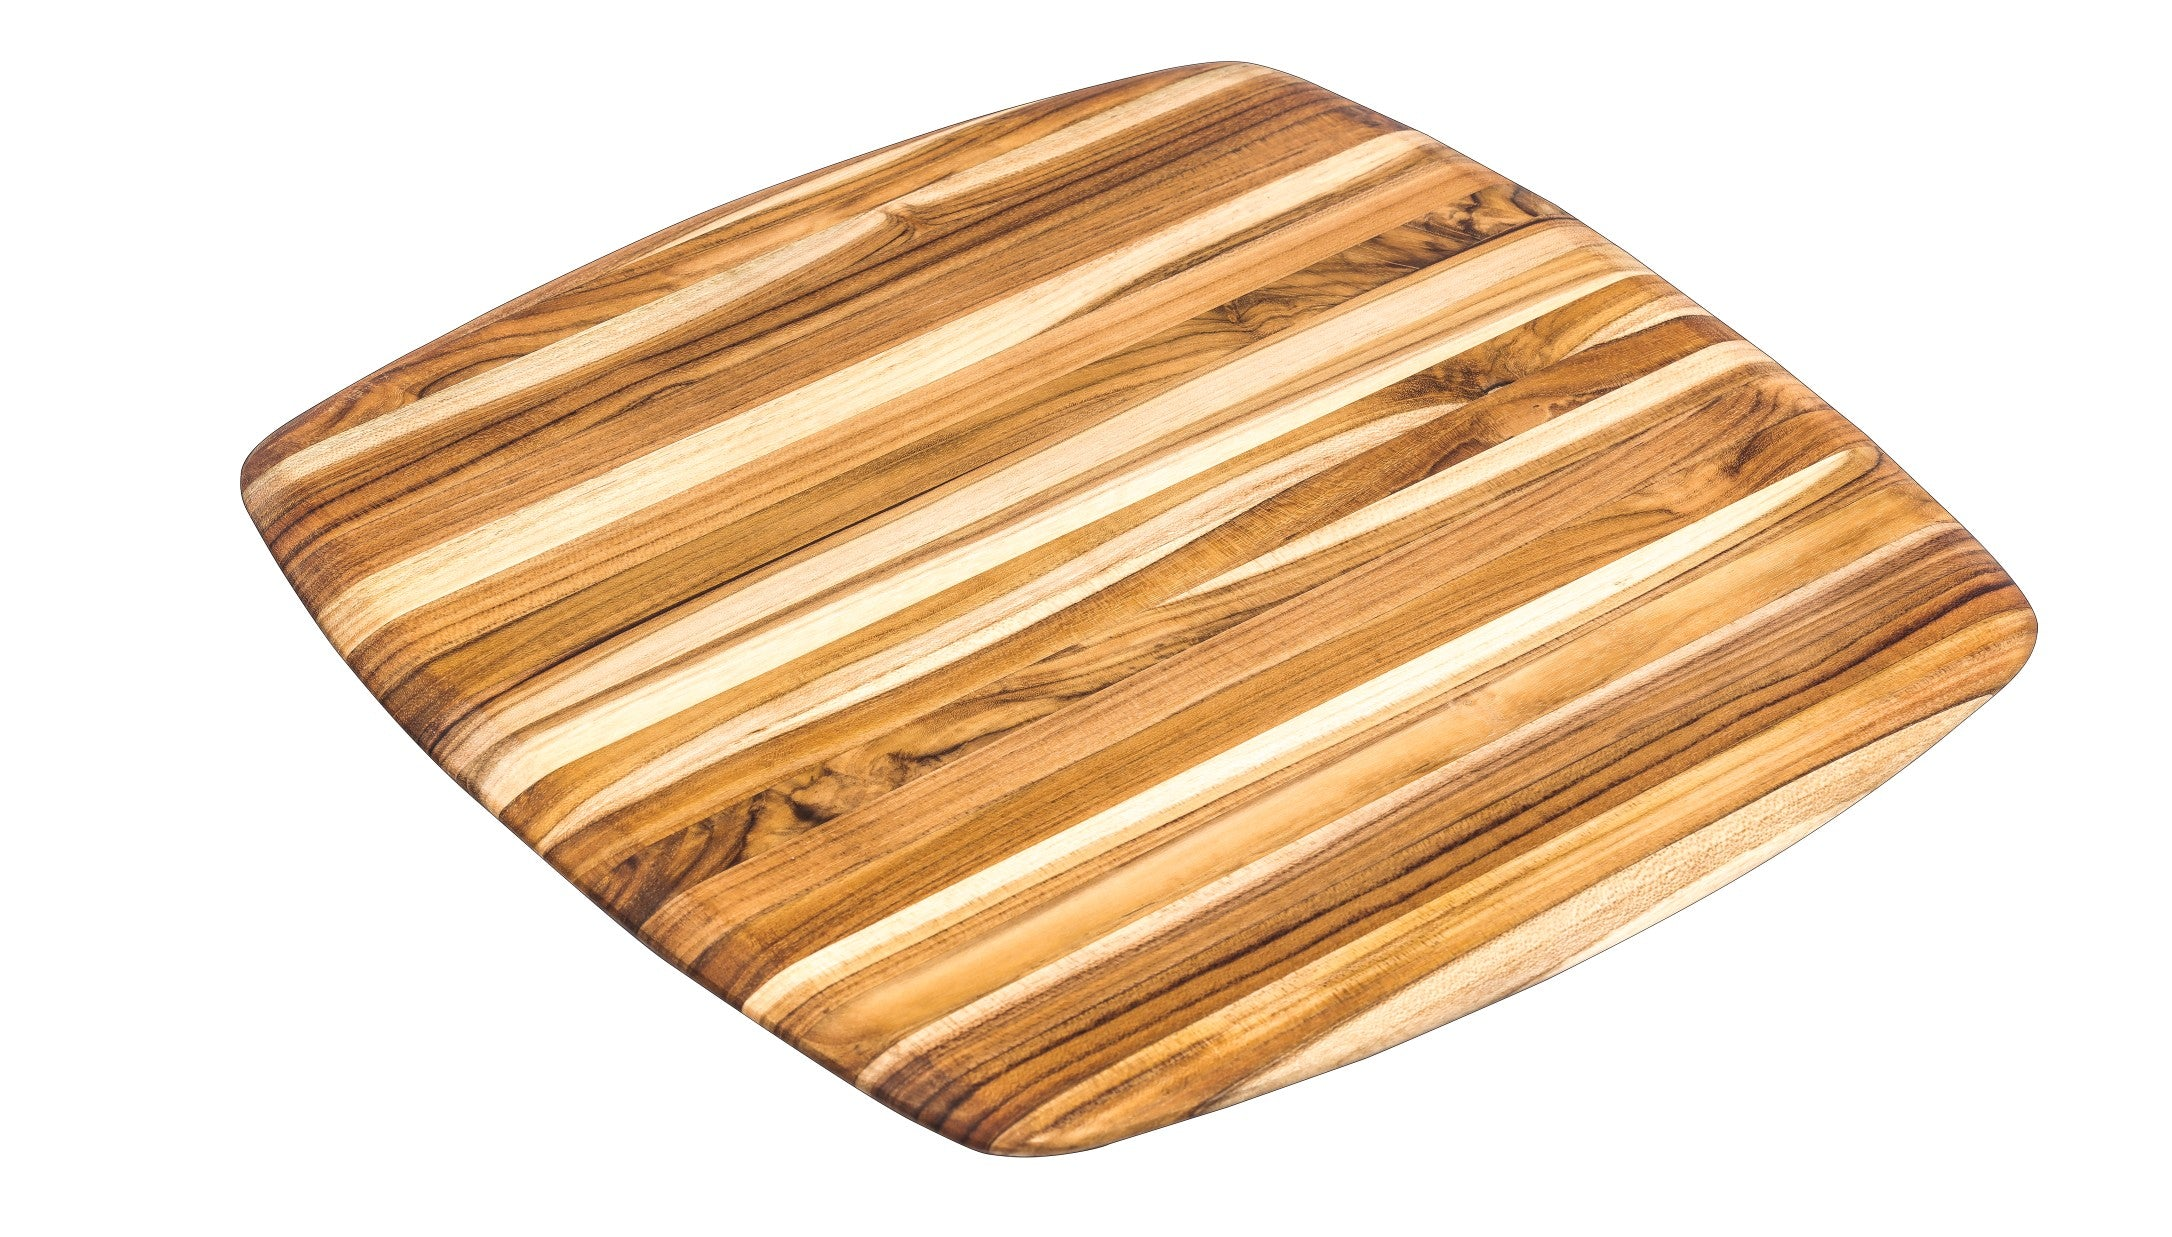 Gently Rounded Edge square Teak board 206